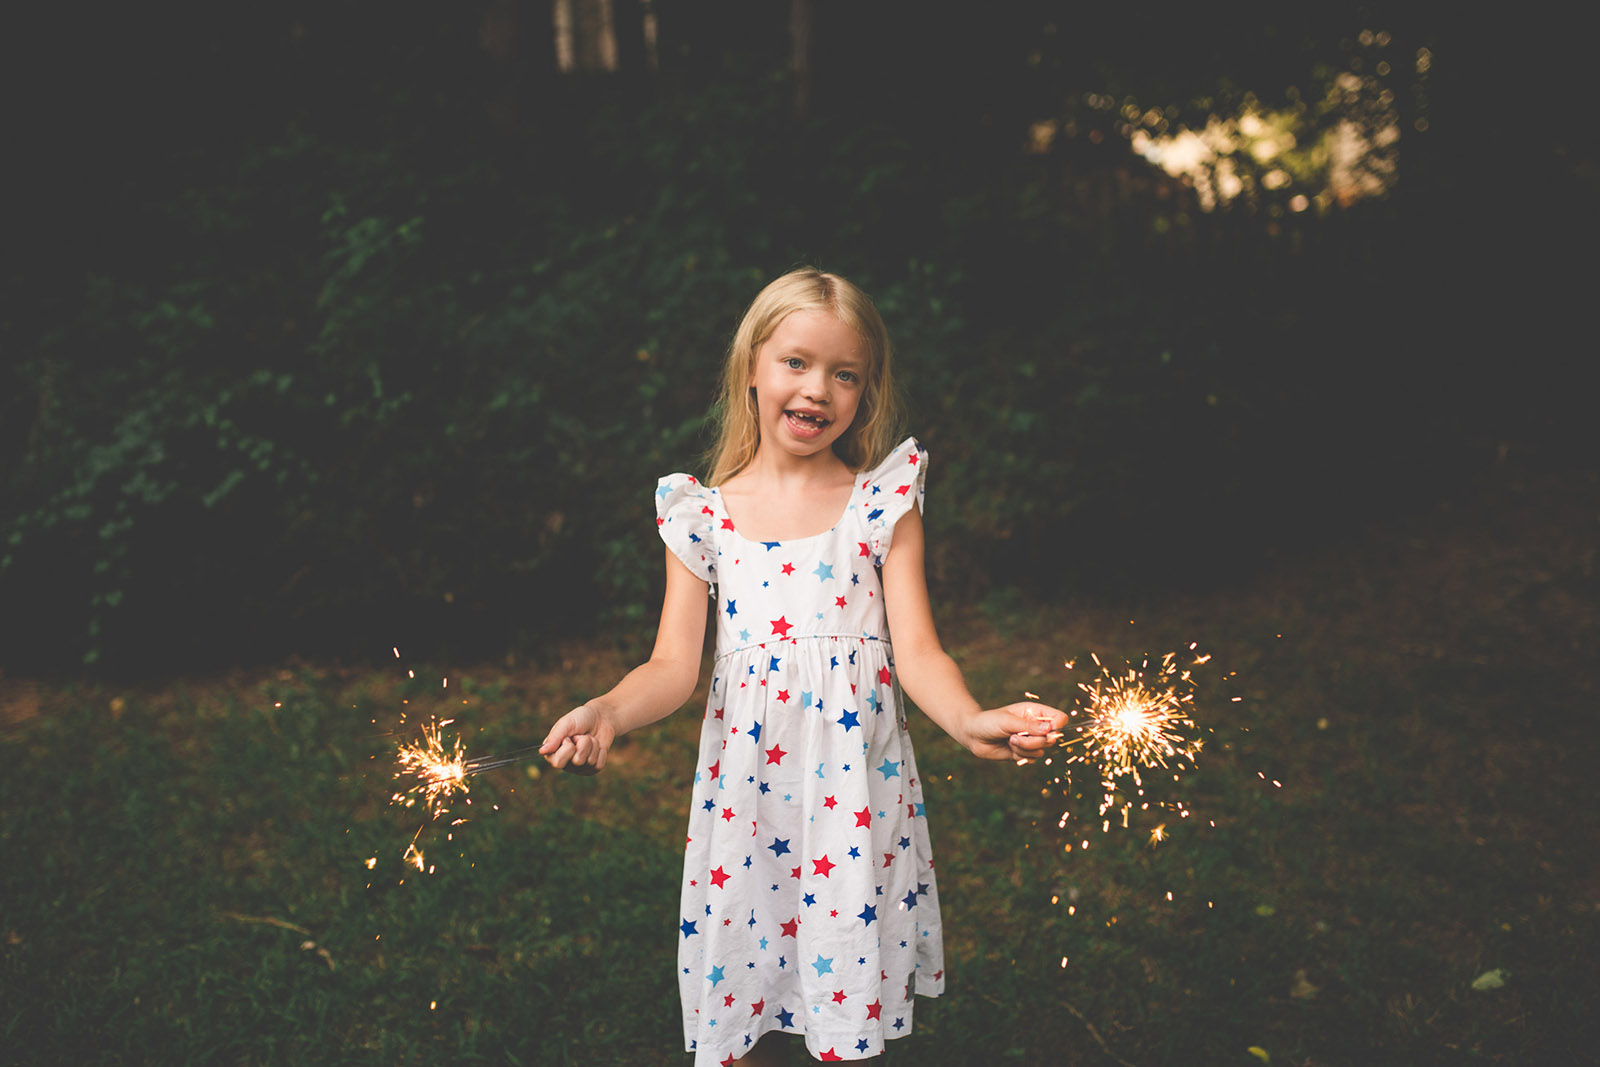 sparkler safety by Tiffany Kelly